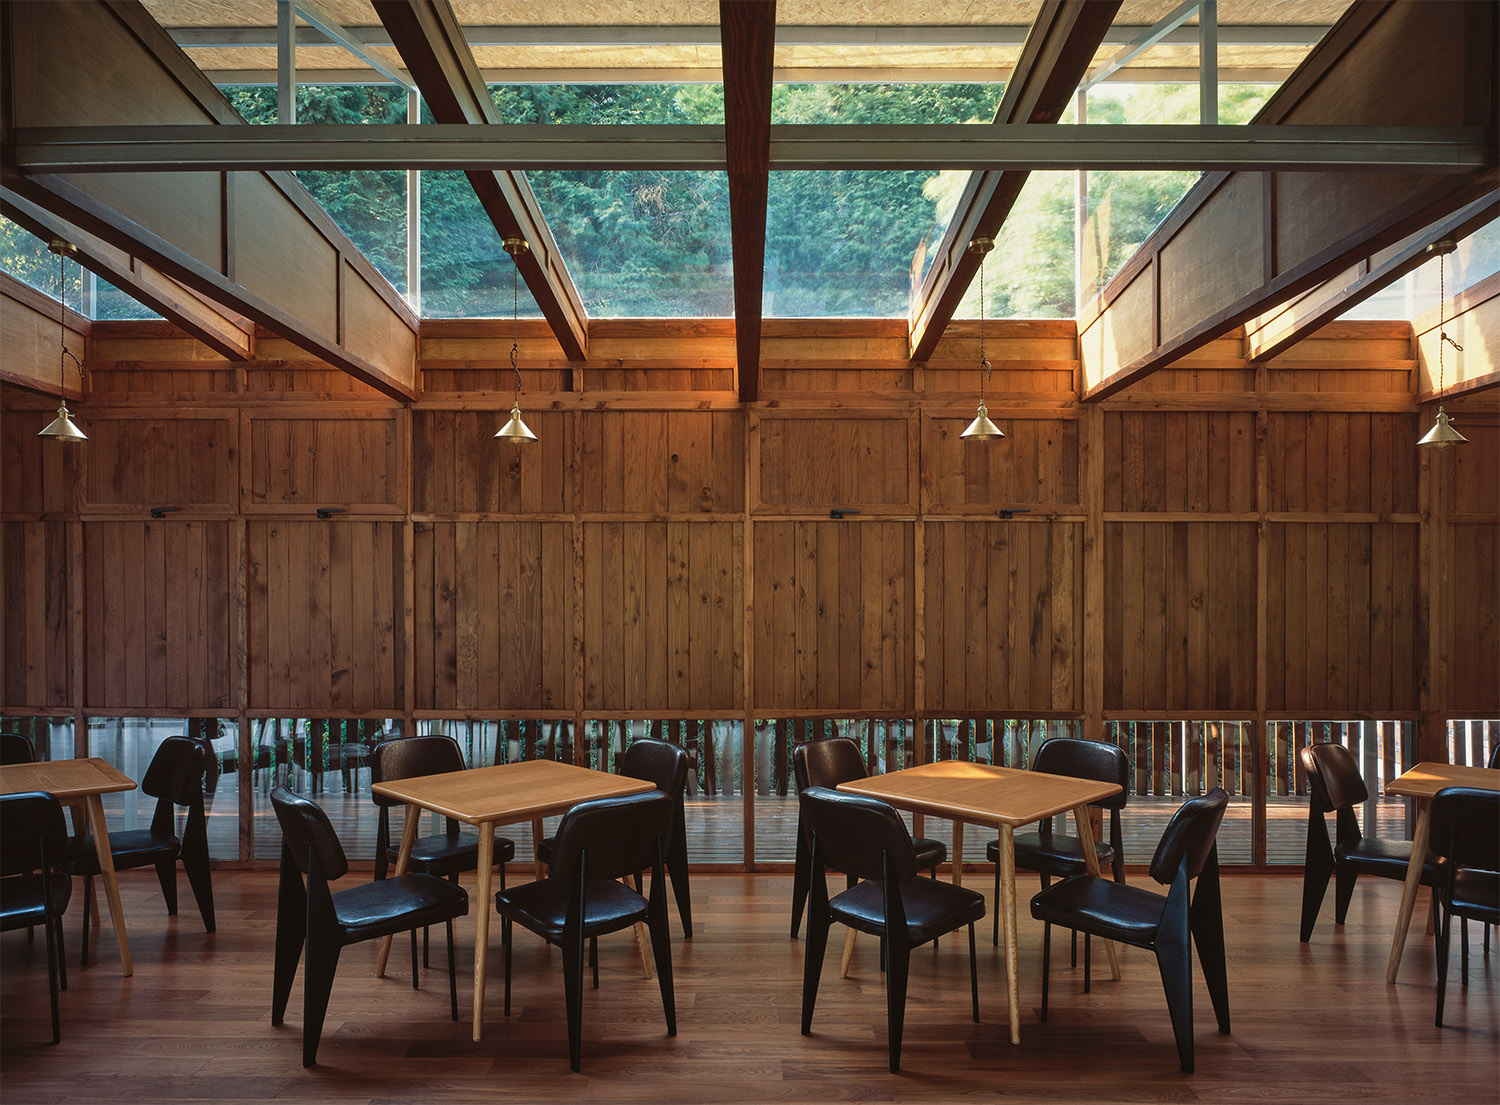 Interior of the Rooftop Canteen Looking to the Mountain Hao Chen